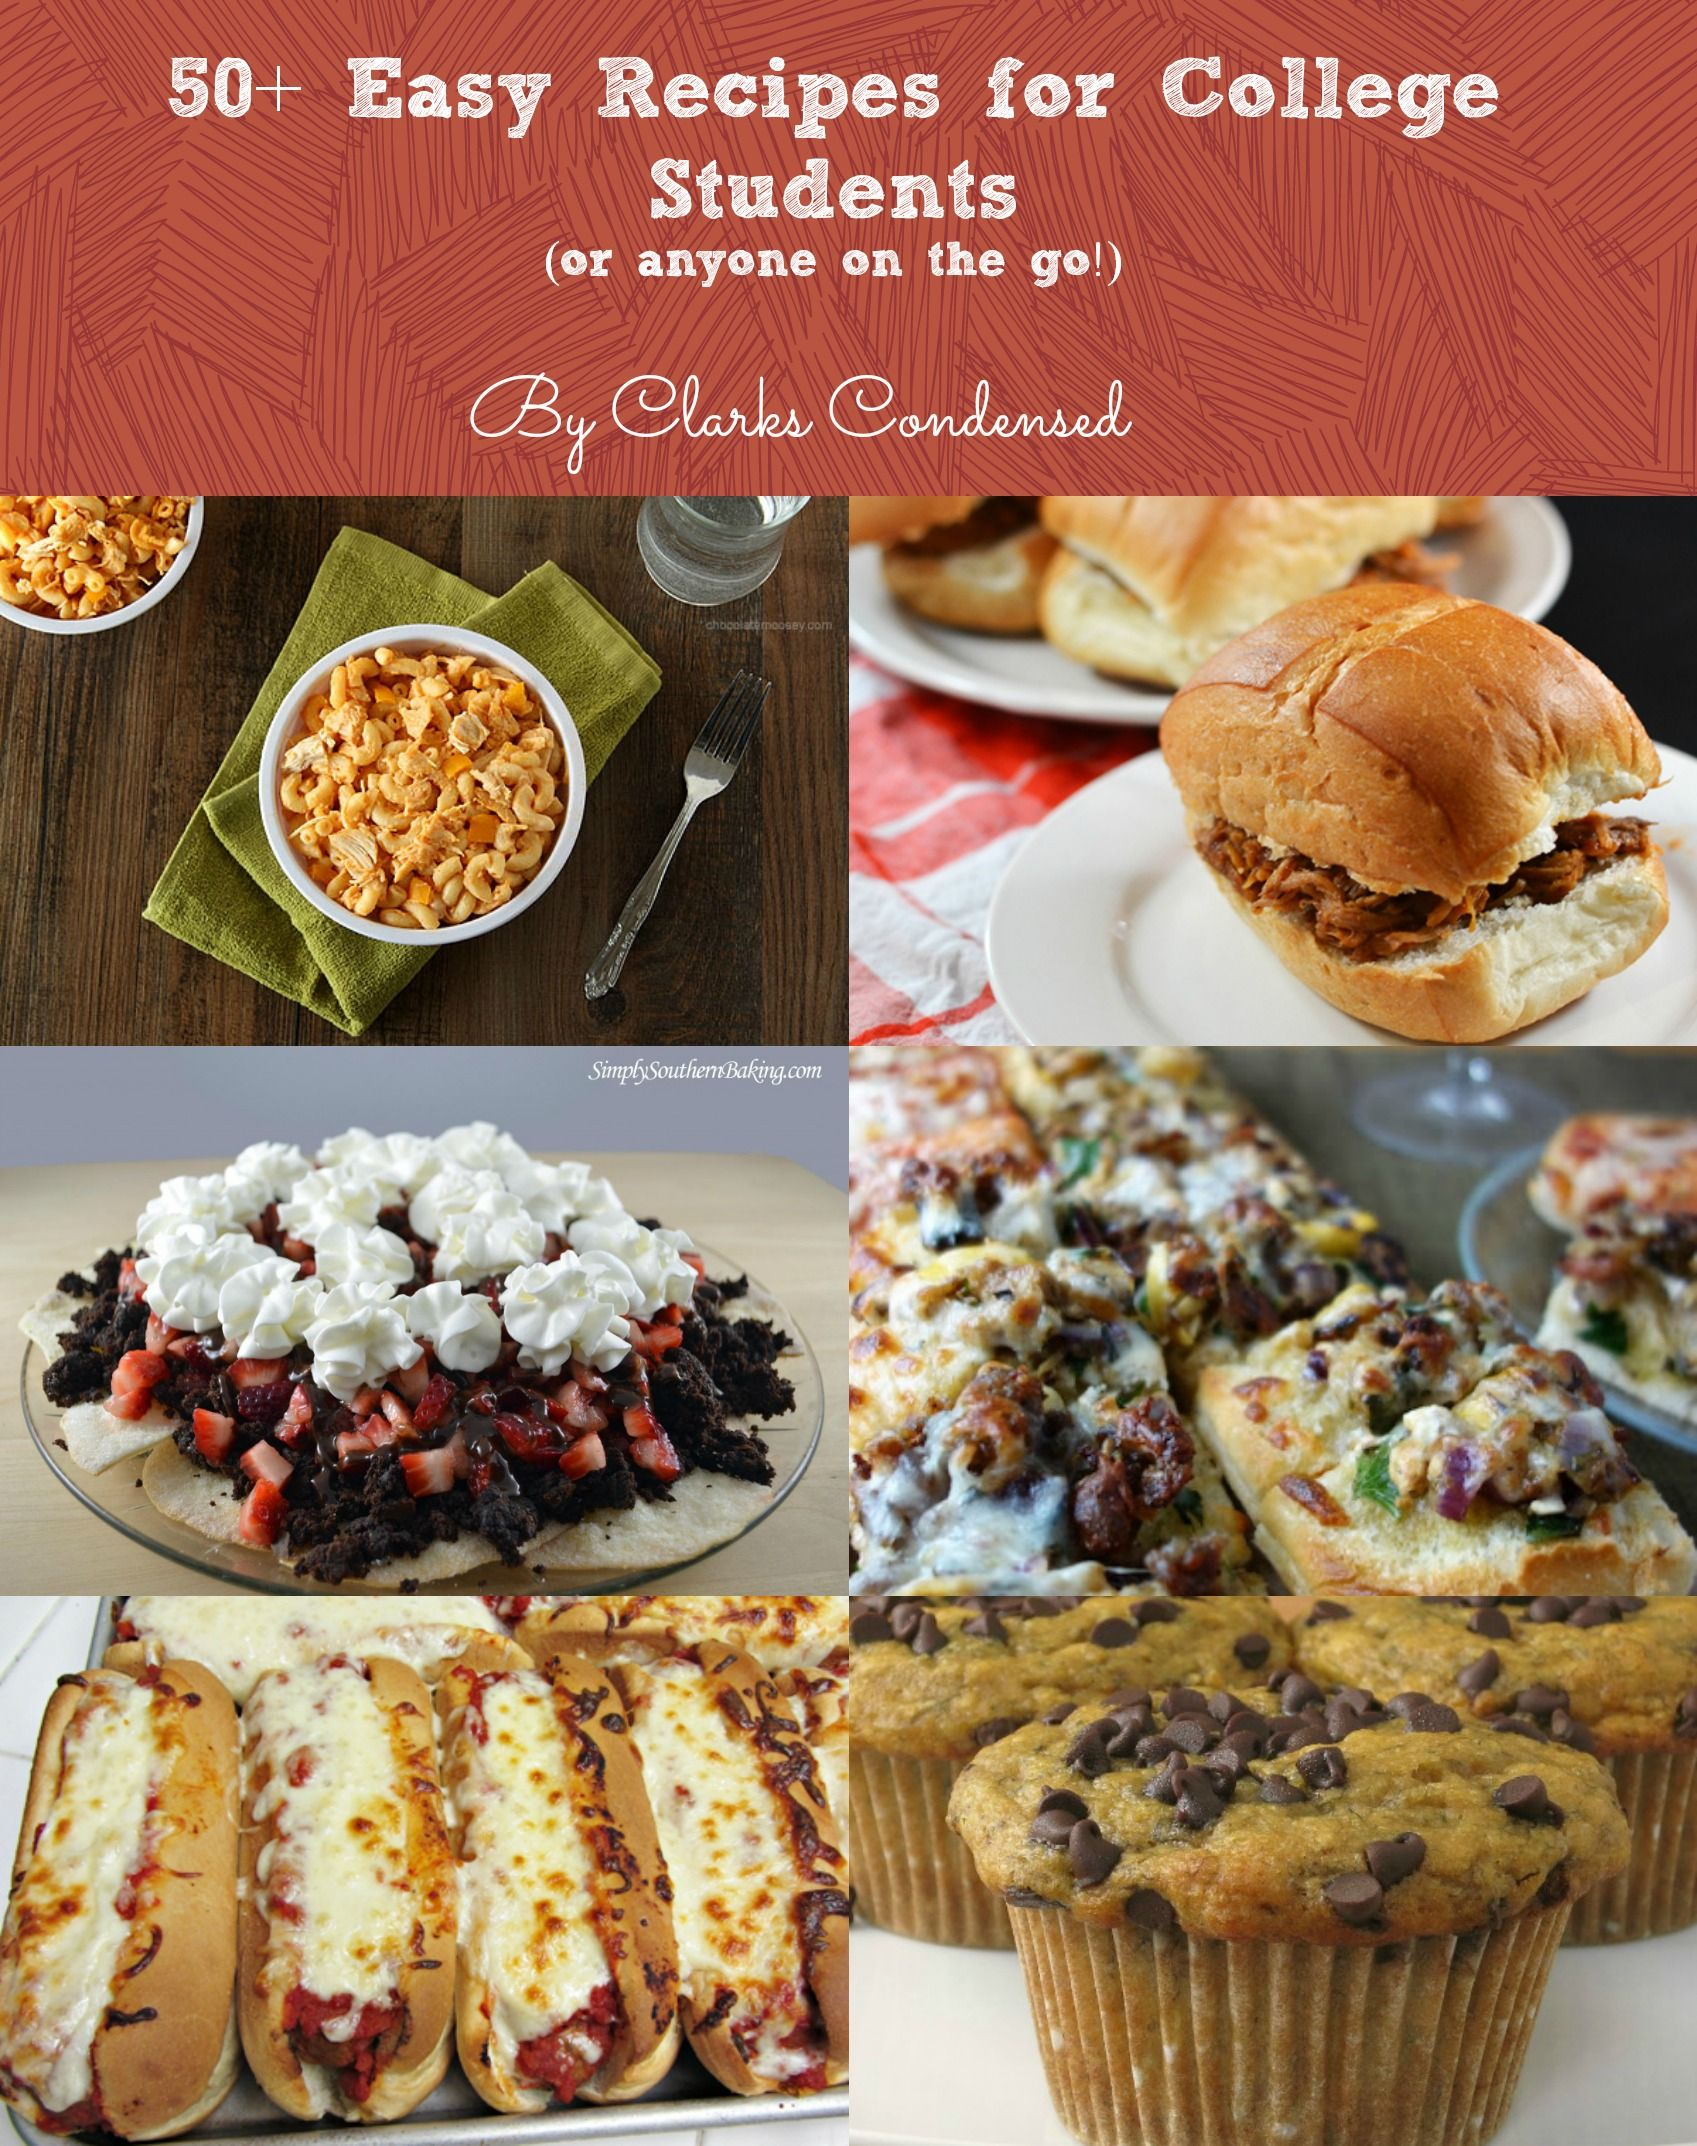 50 Easy College Meals Perfect For Poor College Students Clarks Condensed Easy College Meals Food Easy Meals